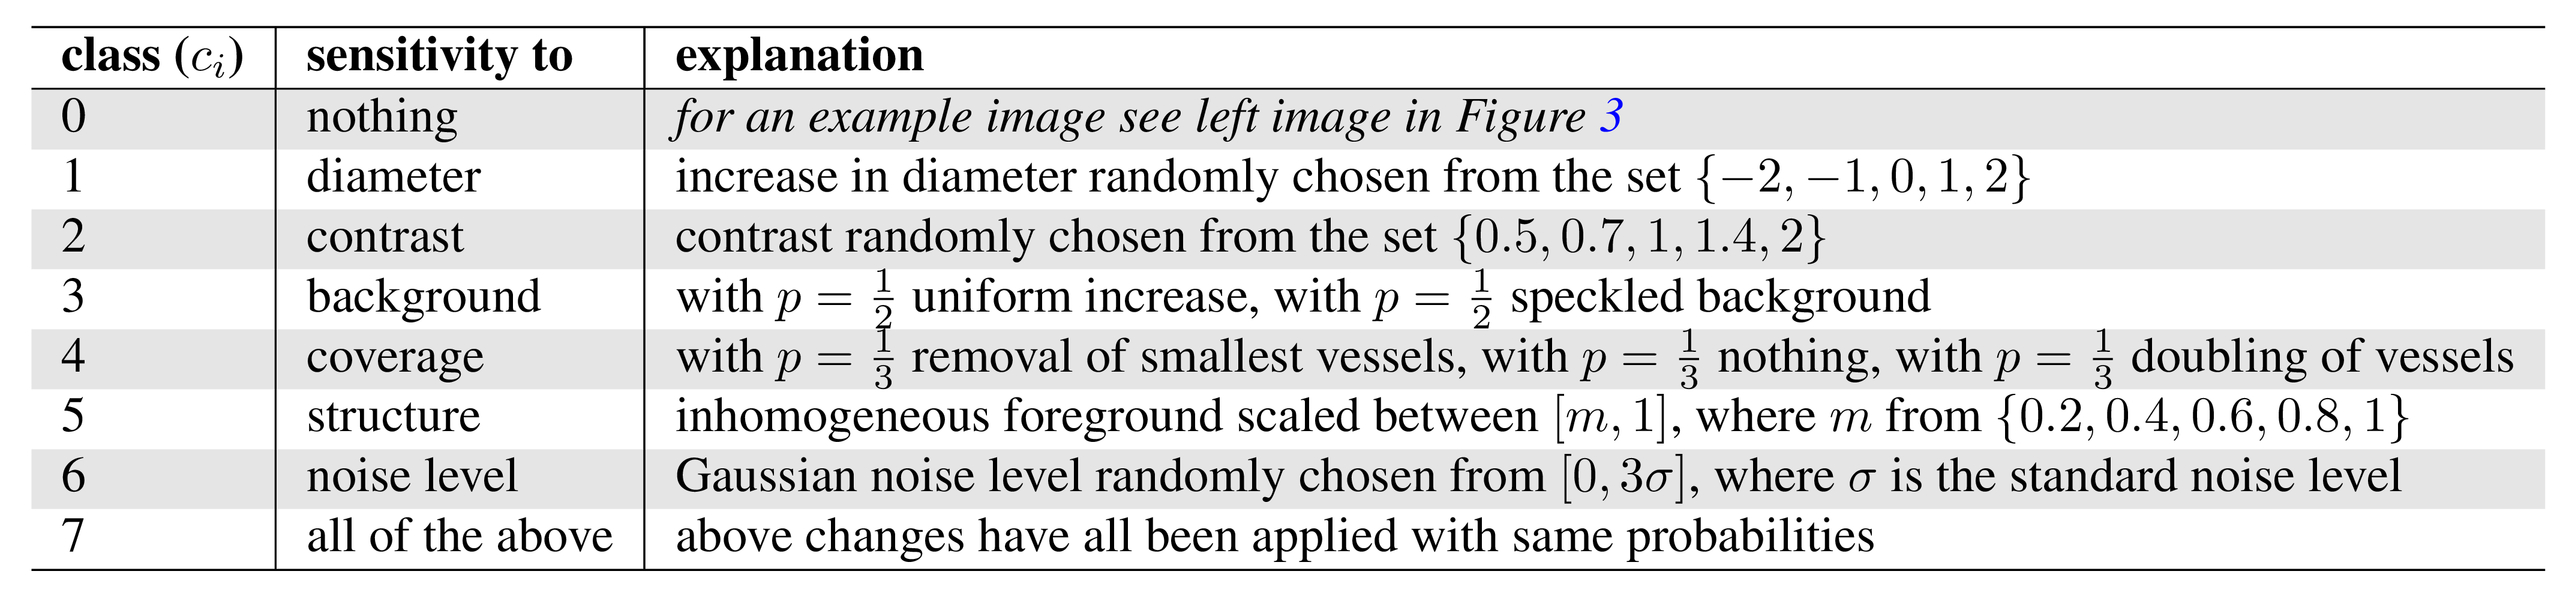 Robustness of a partially learned photoacoustic